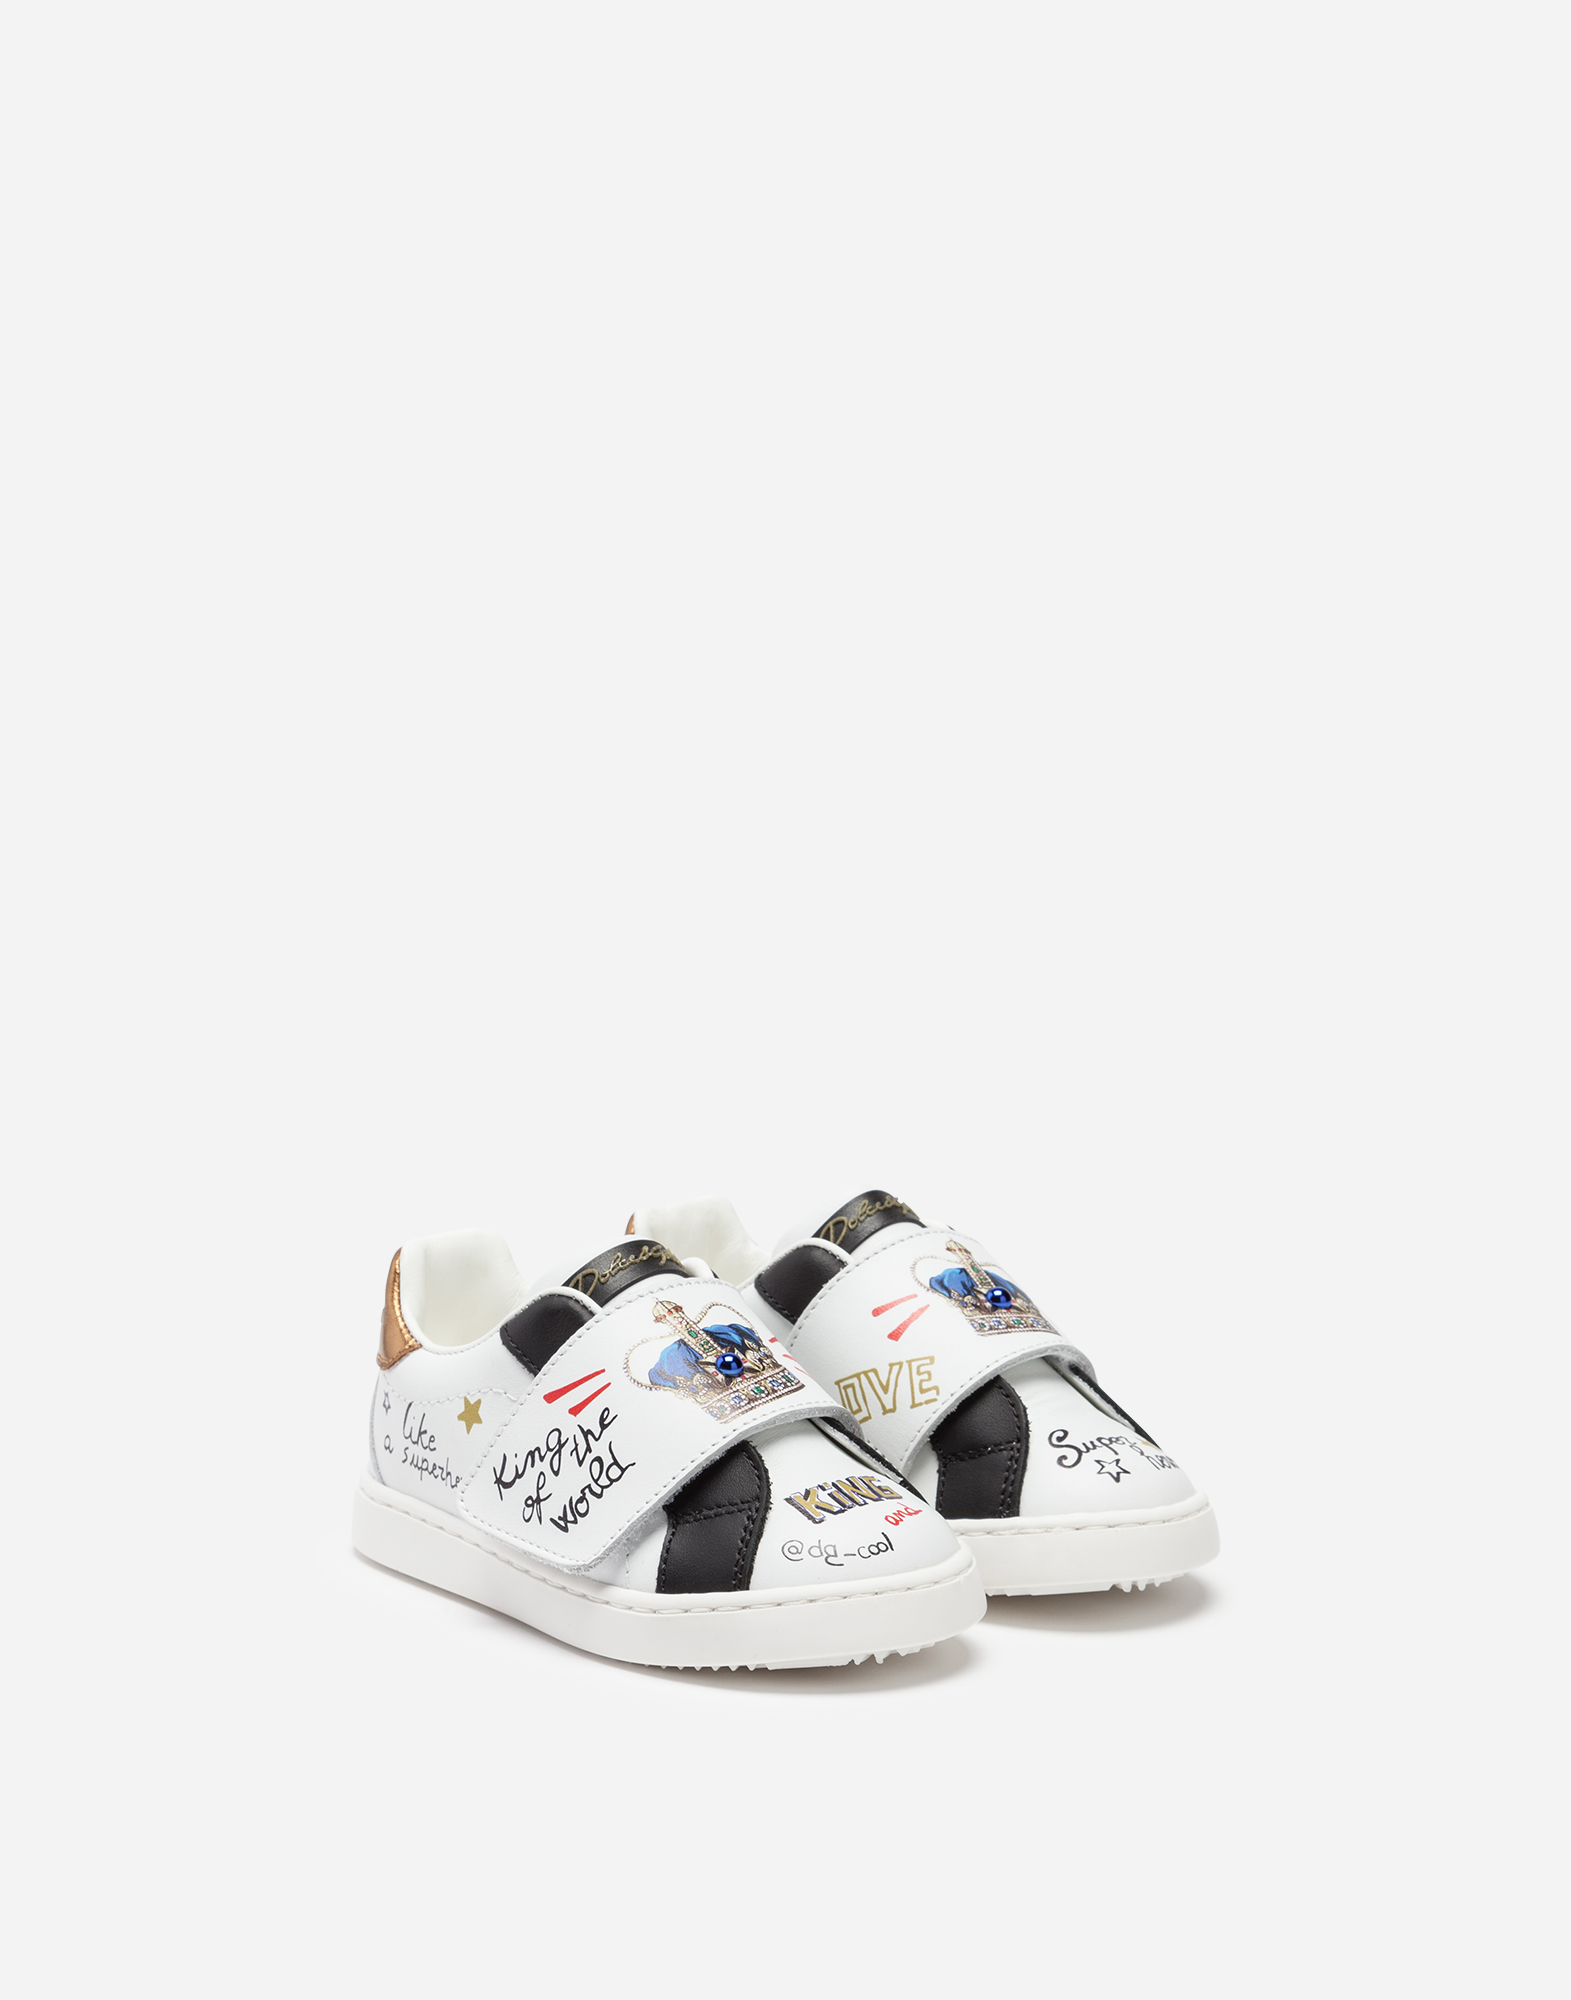 Dolce & Gabbana FIRST STEPS PORTOFINO PRINTED SNEAKERS